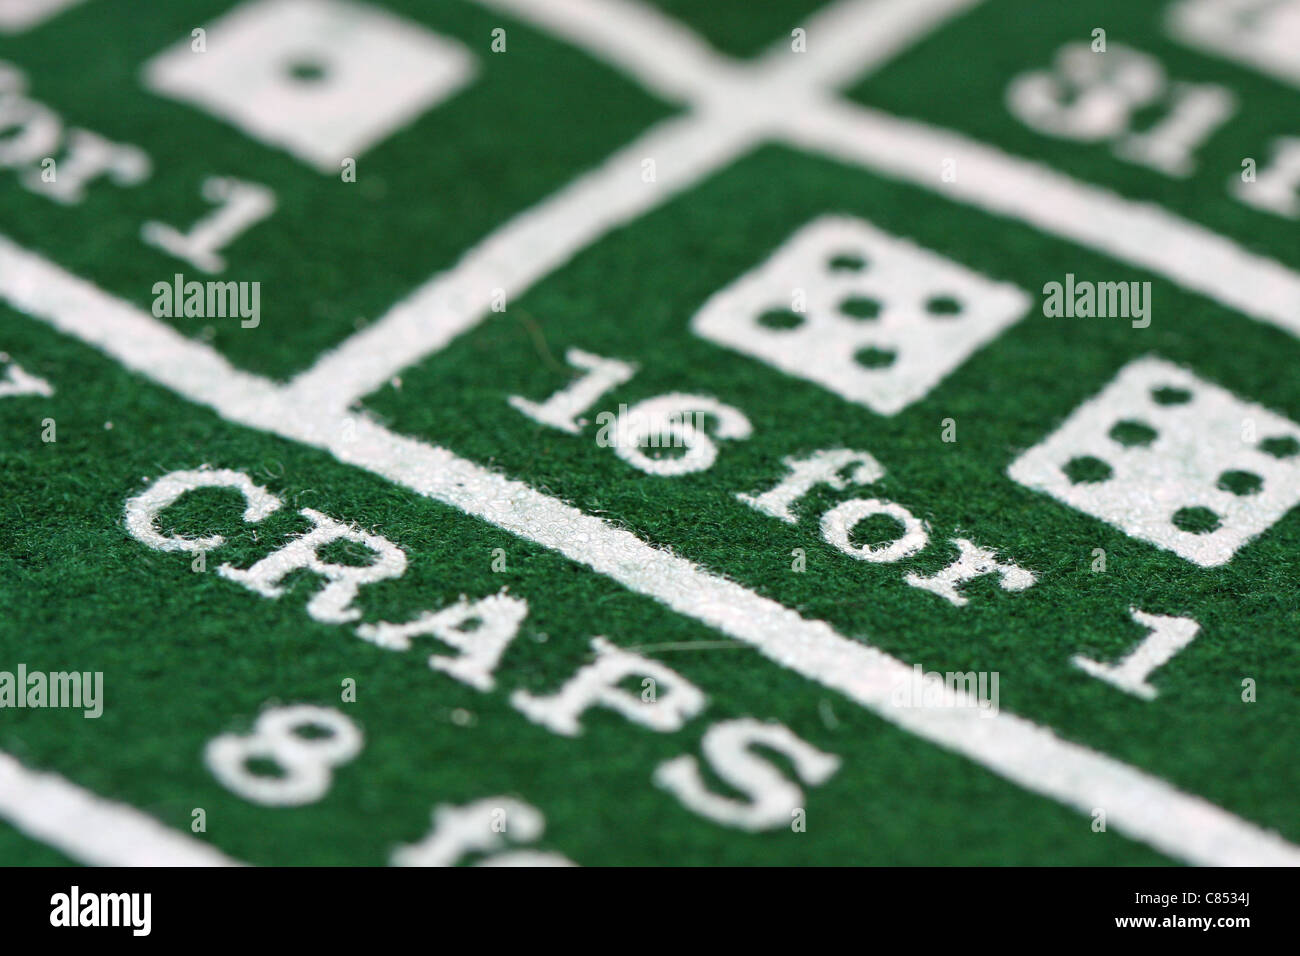 Craps Table - Stock Image